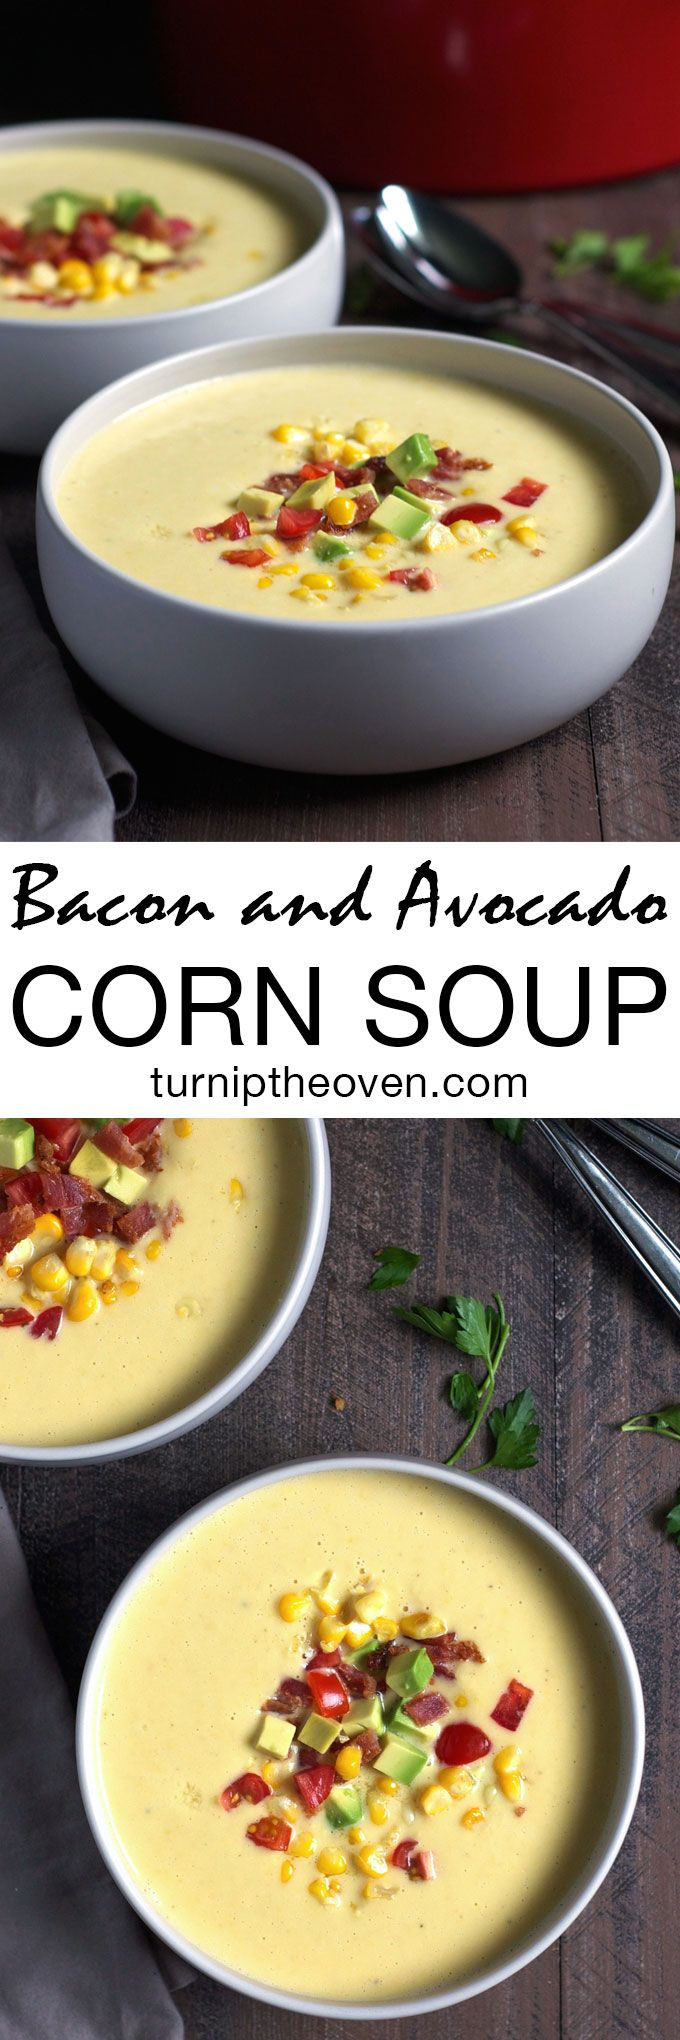 ... . Top it with plenty of crumbled bacon, diced avocado, and tomatoes